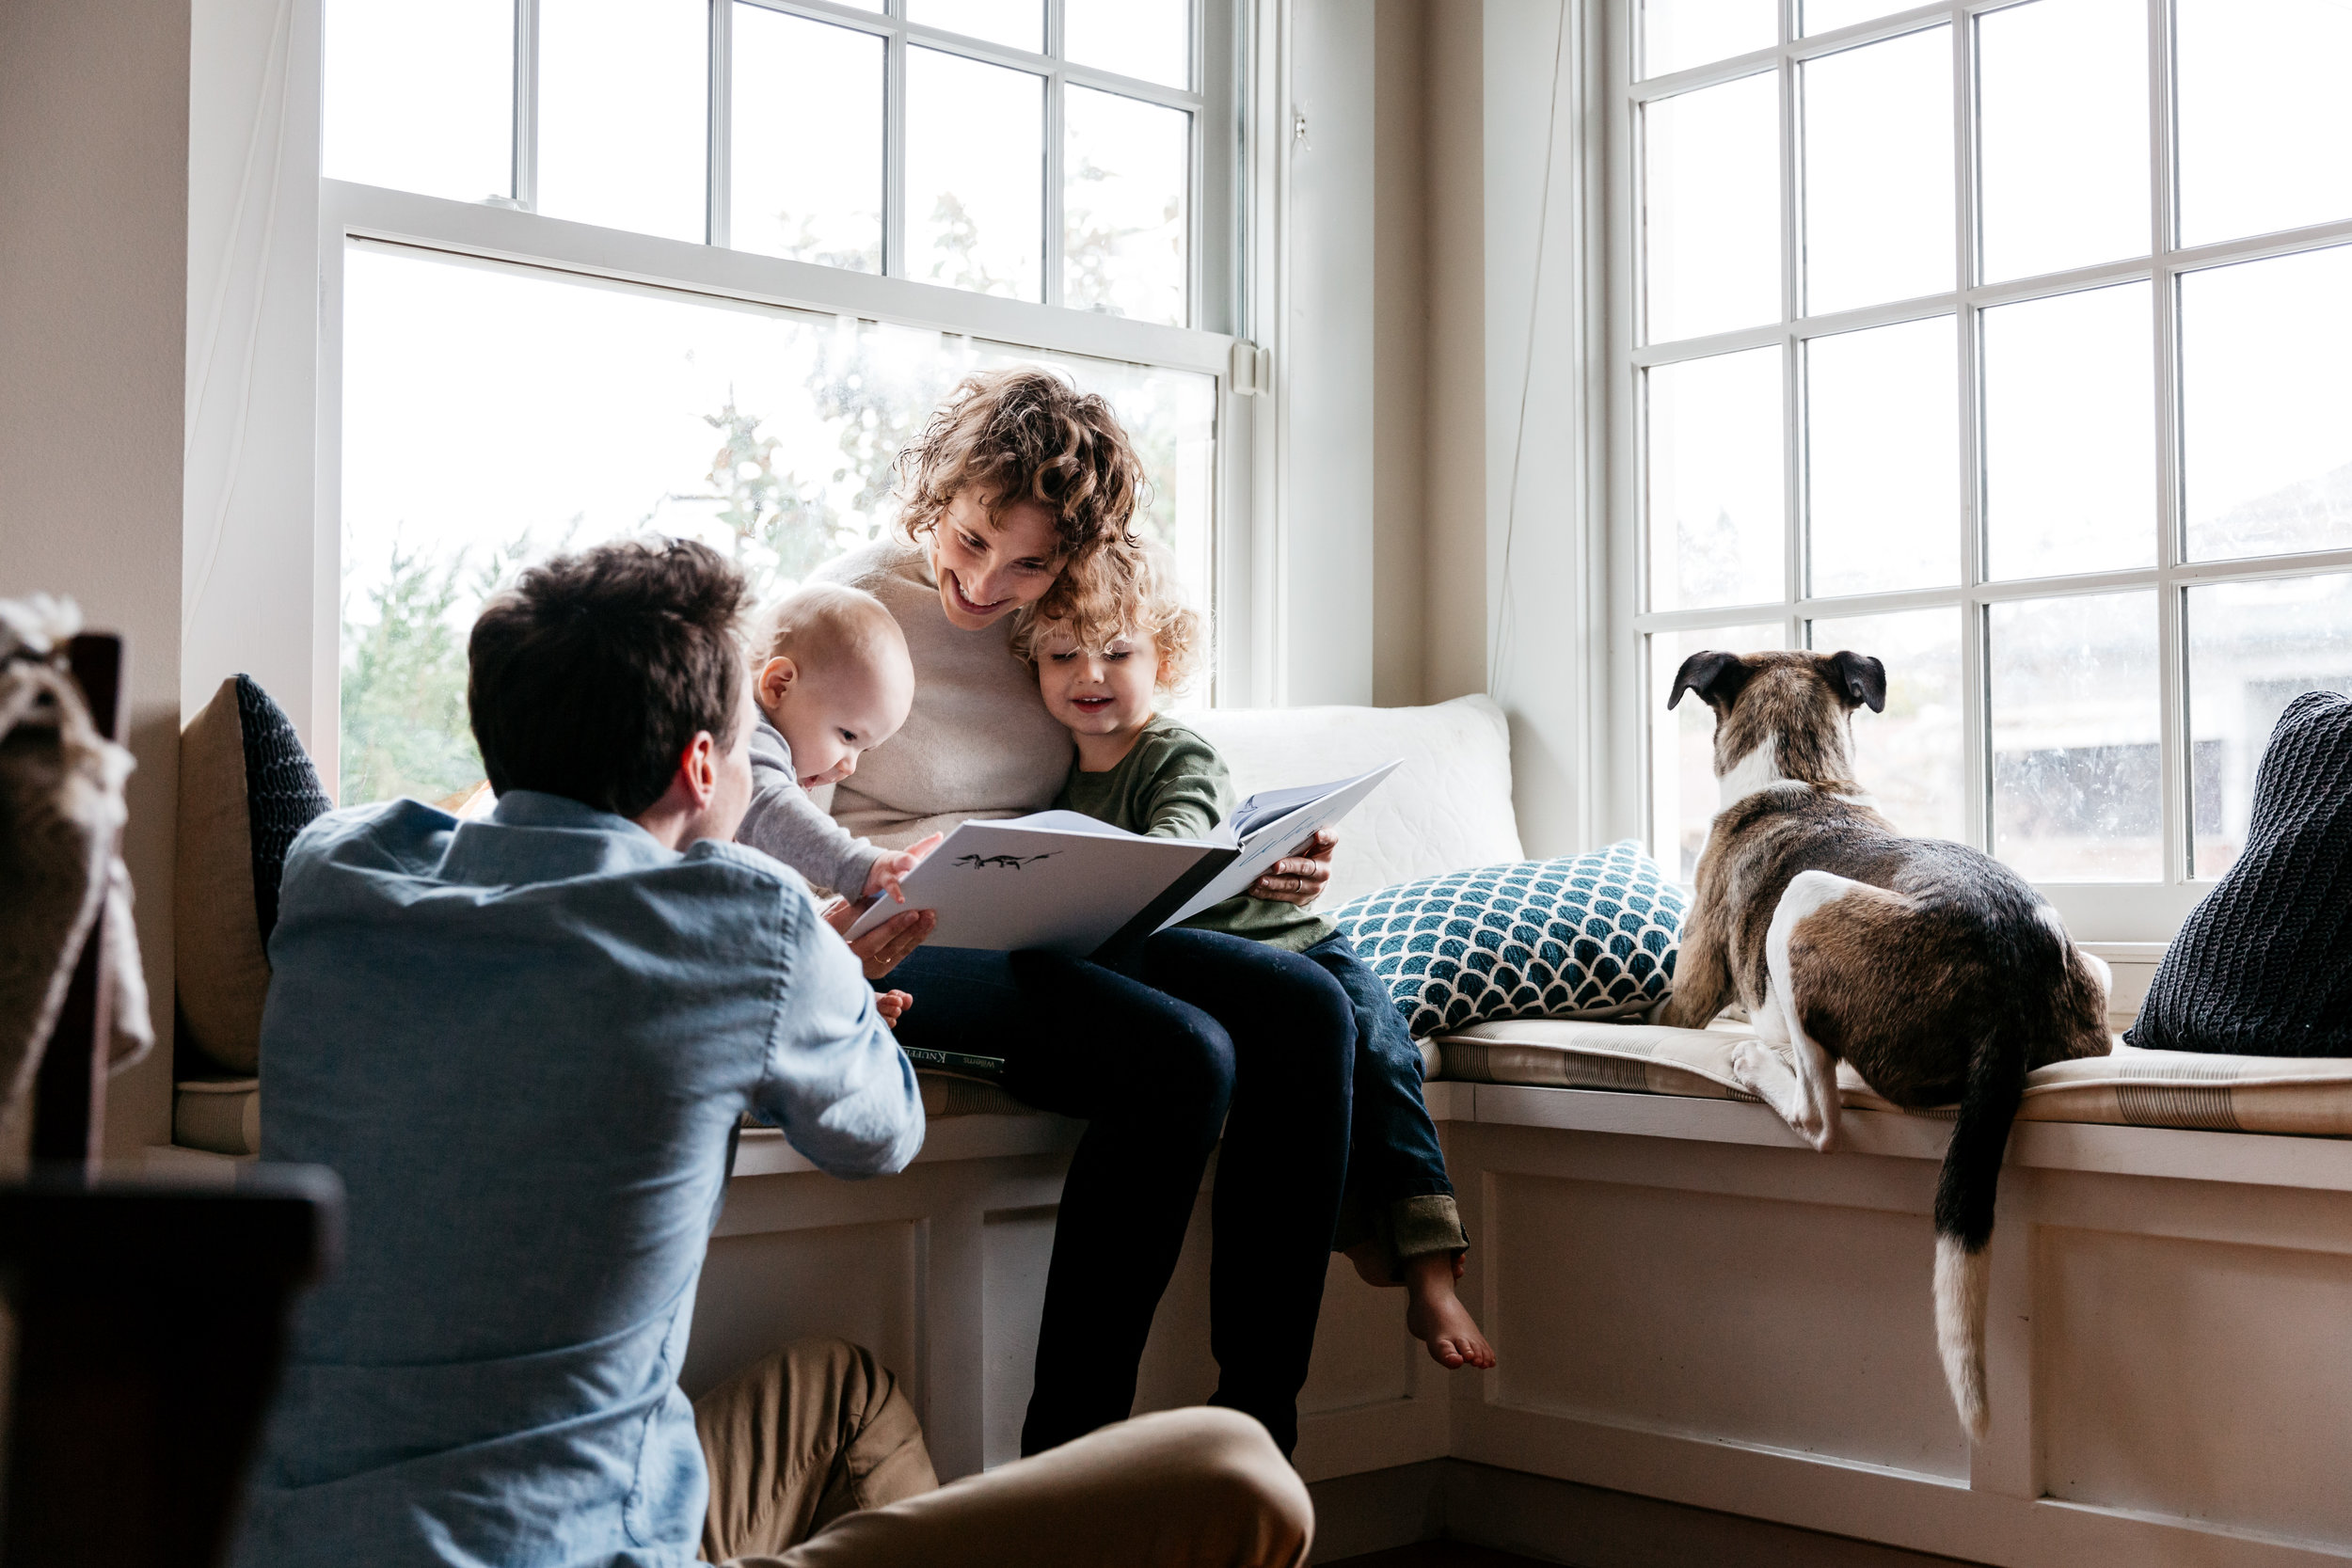 Family Sessions - in-home or at a meaningful location